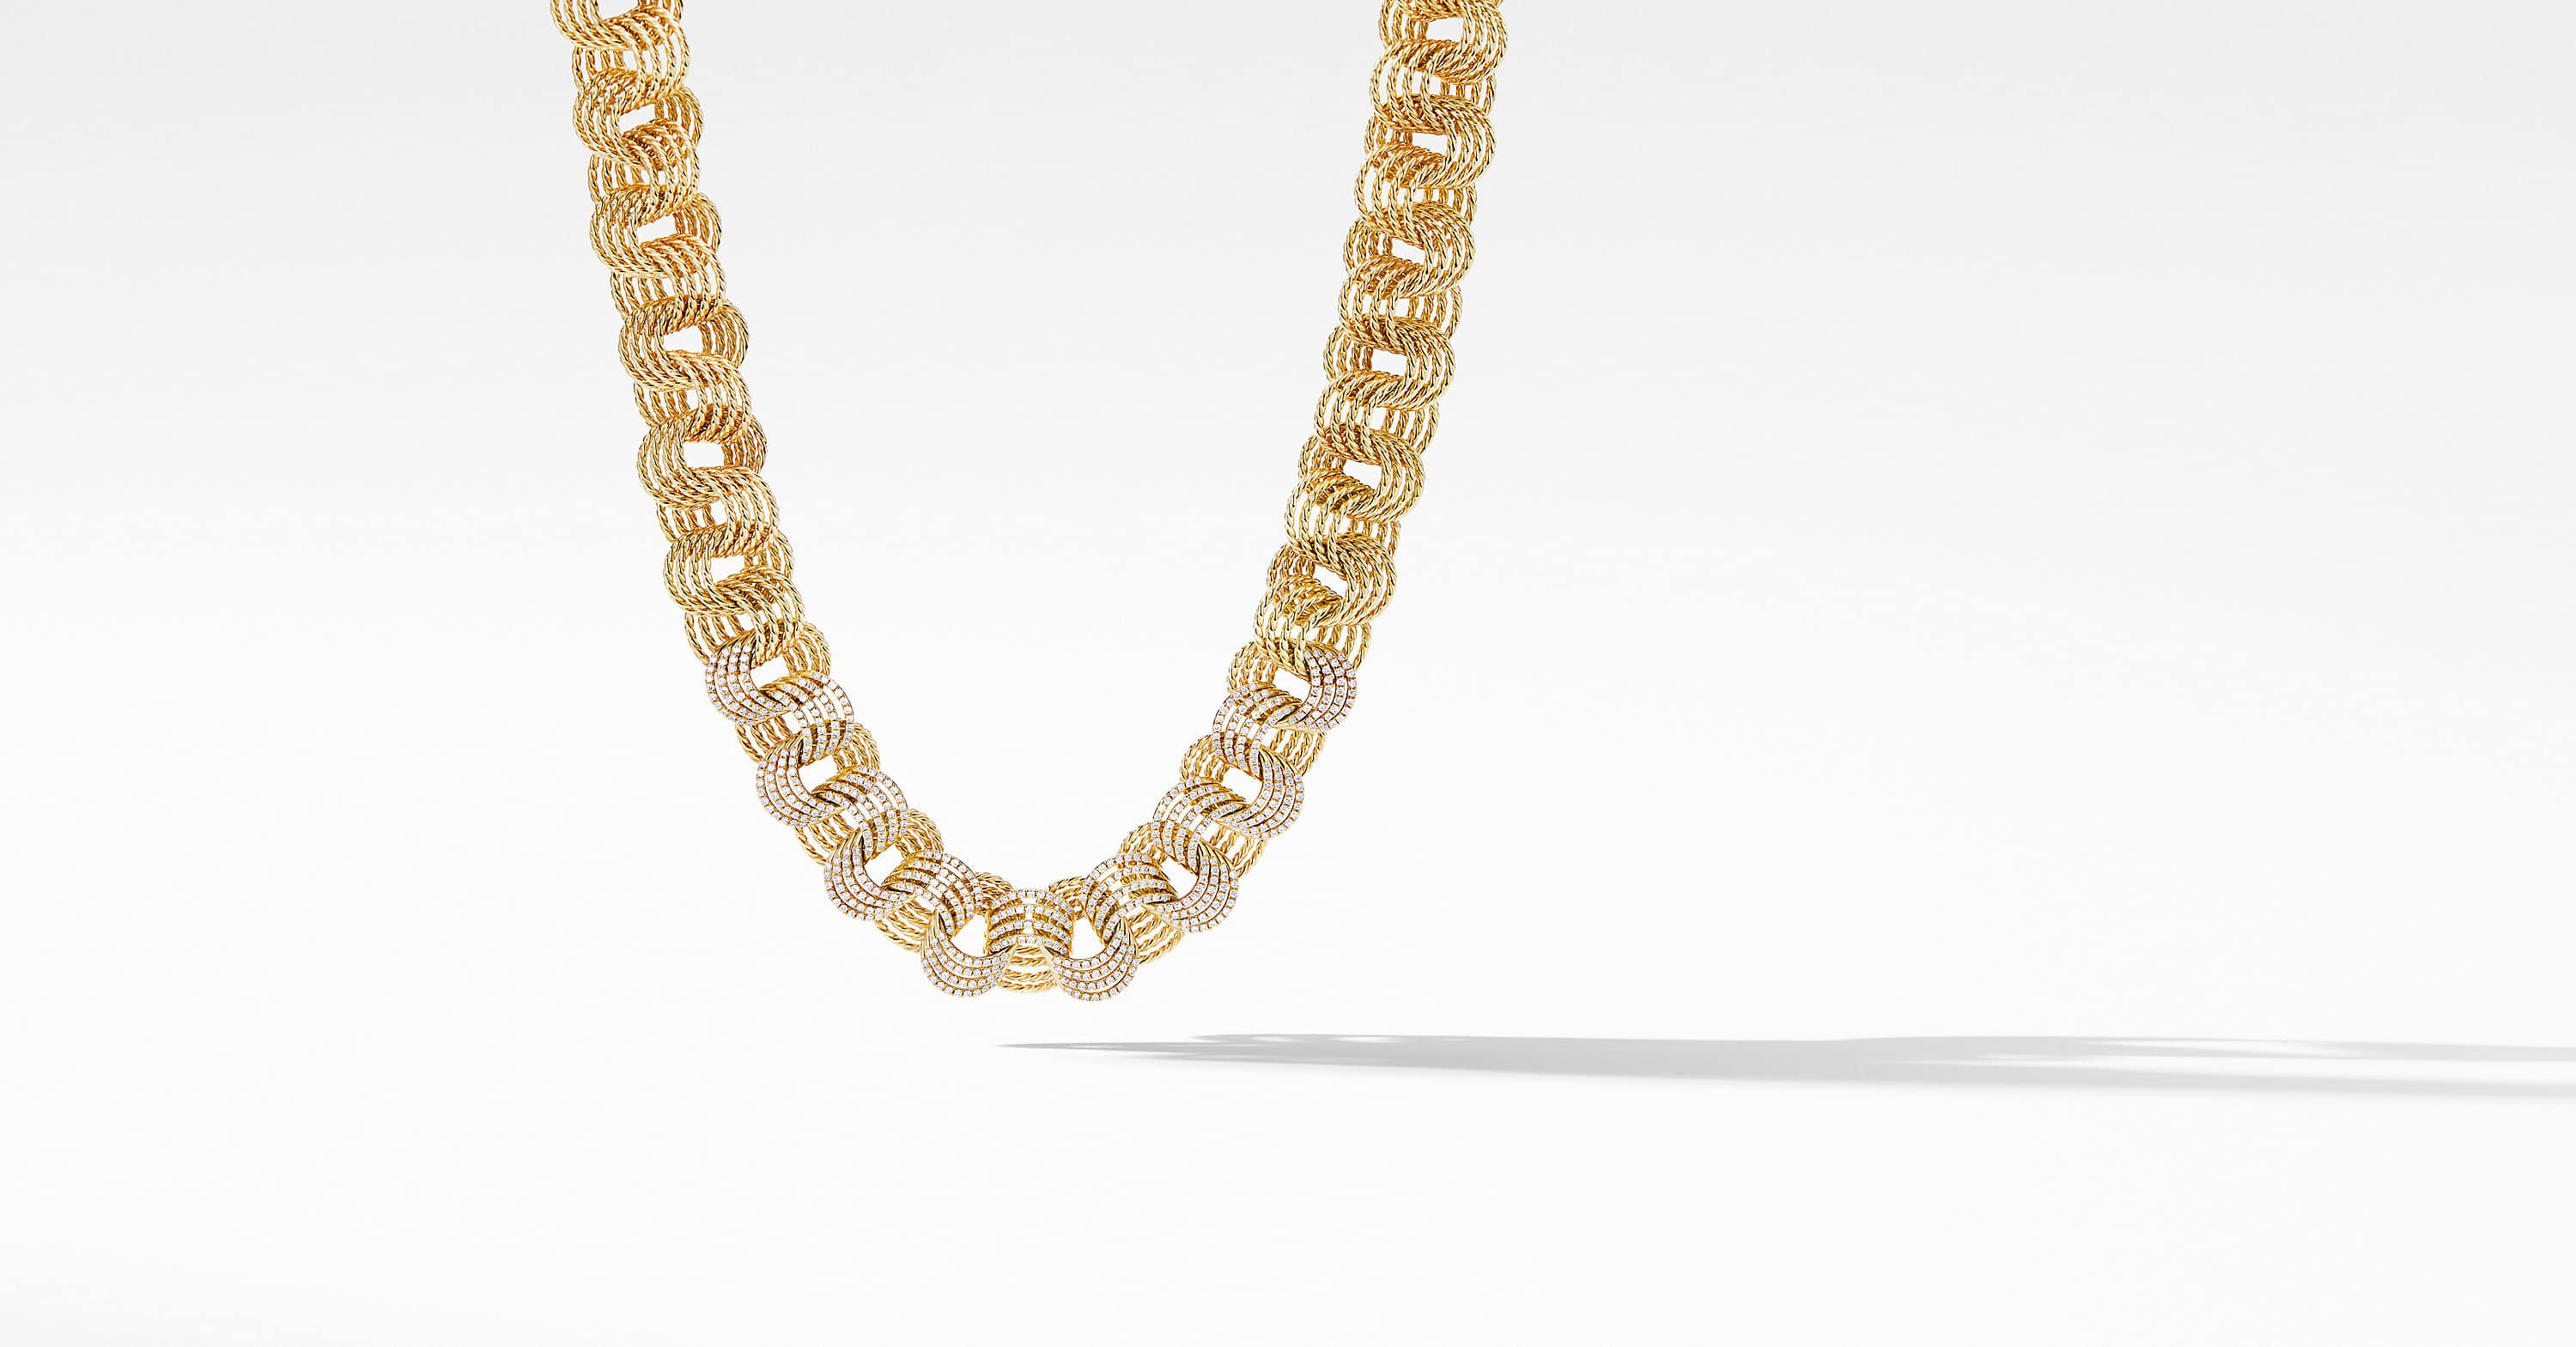 DY Origami Small Linked Necklace in 18K Yellow Gold with Diamonds